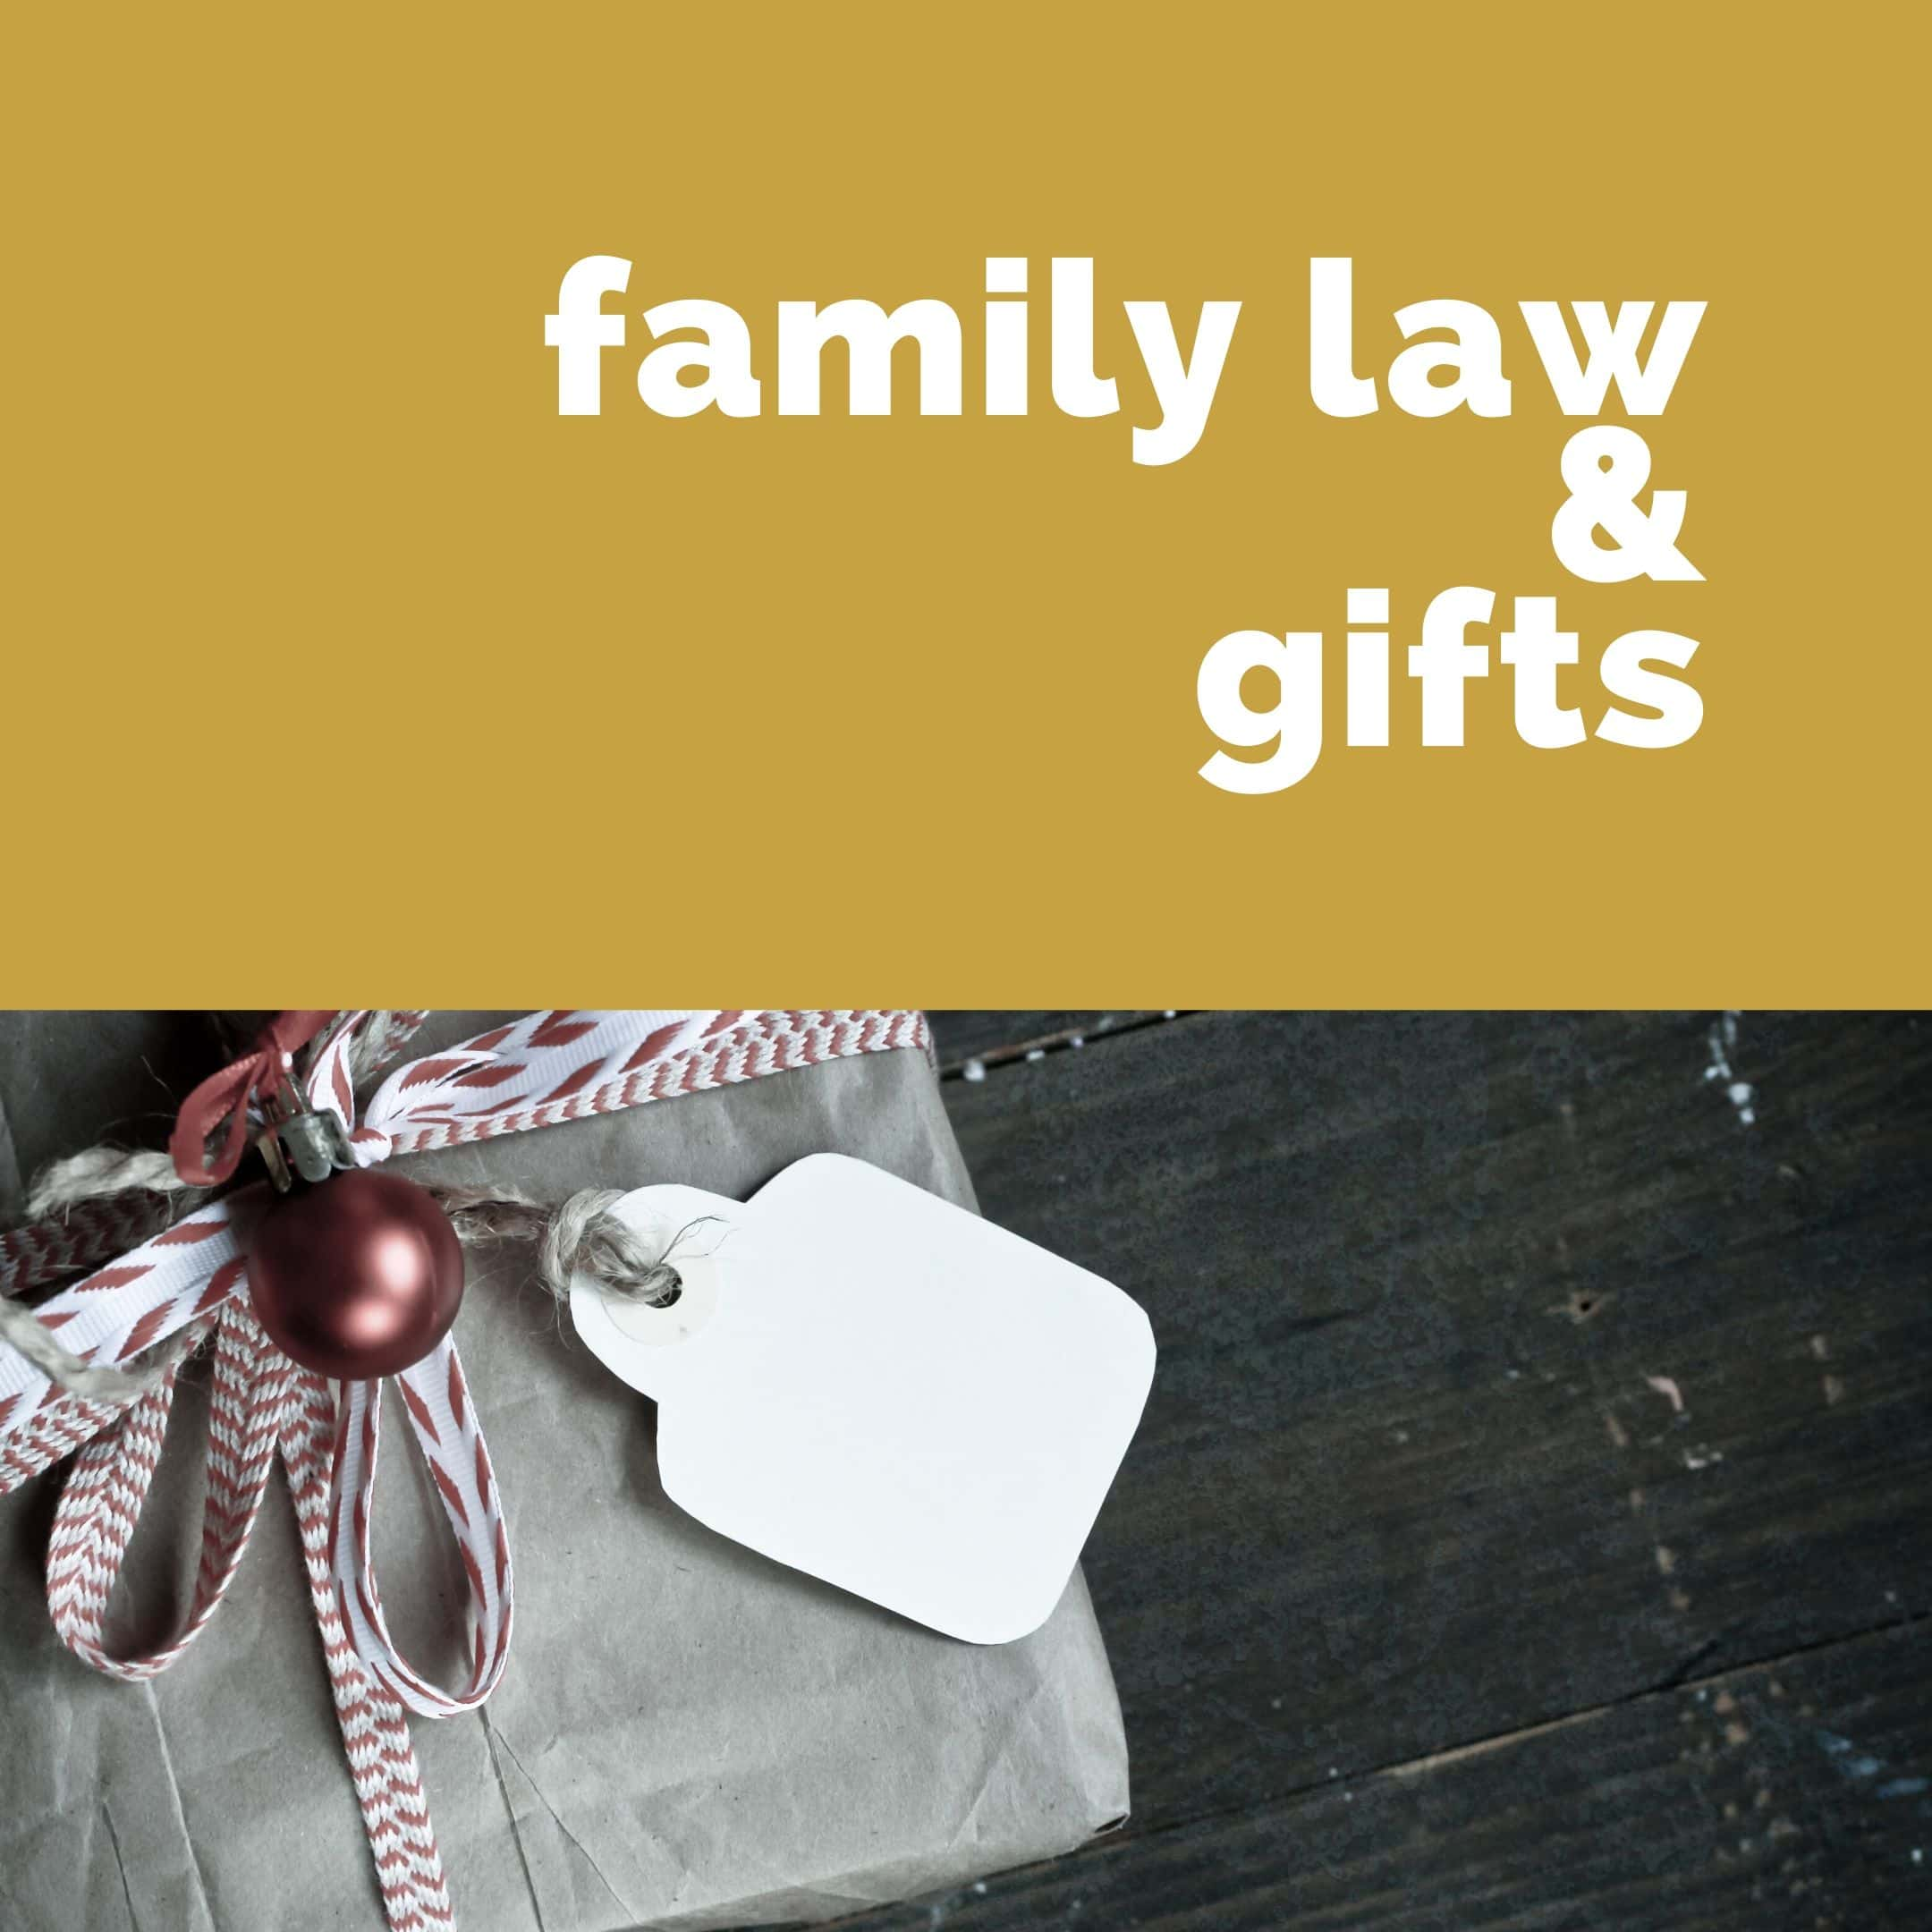 How Are Gifts Treated In Family Law?